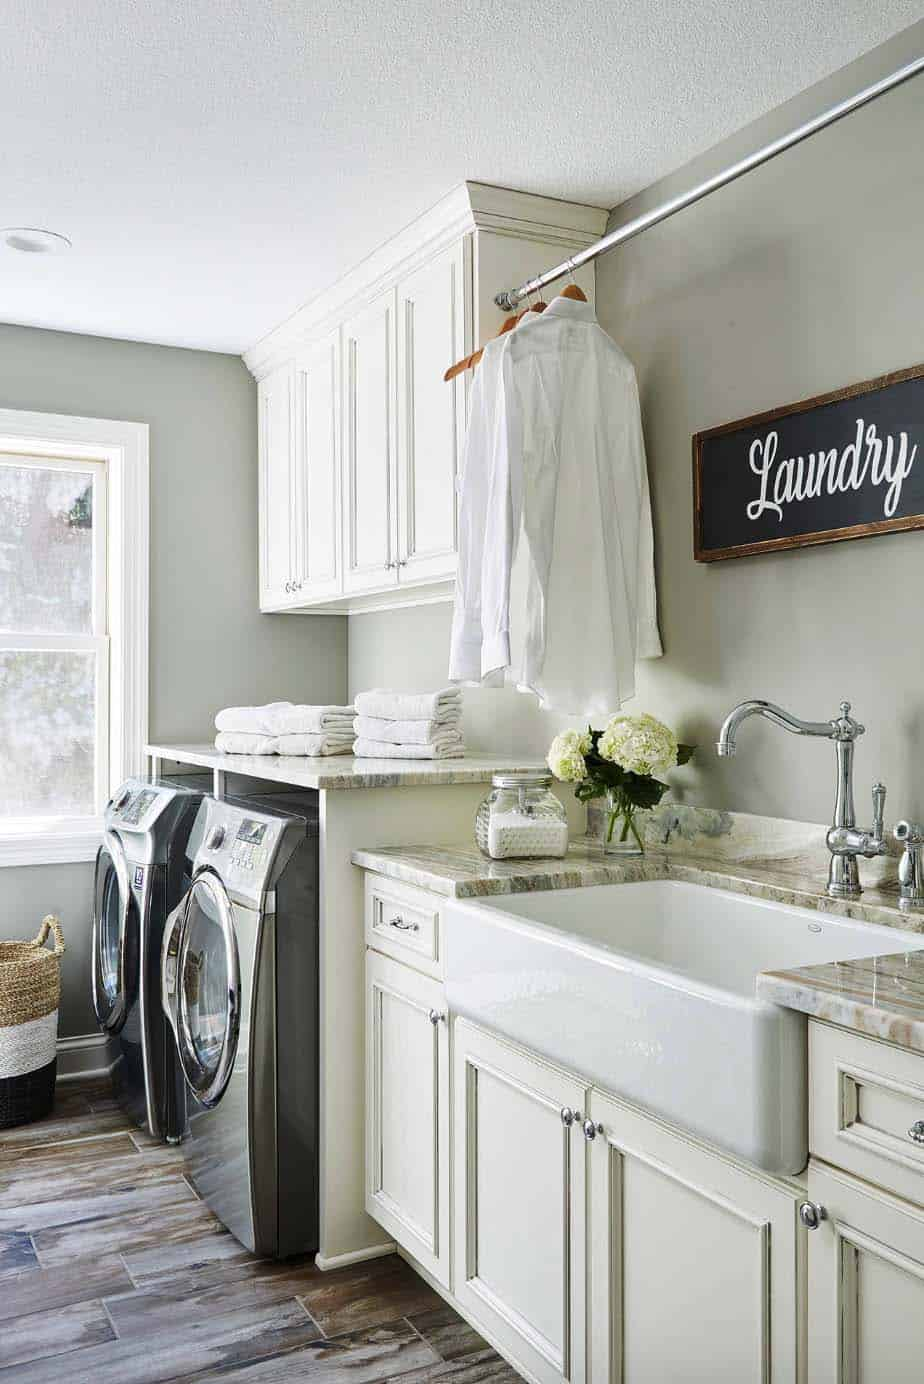 29 Functional And Stylish Laundry Room Design Ideas To Inspire